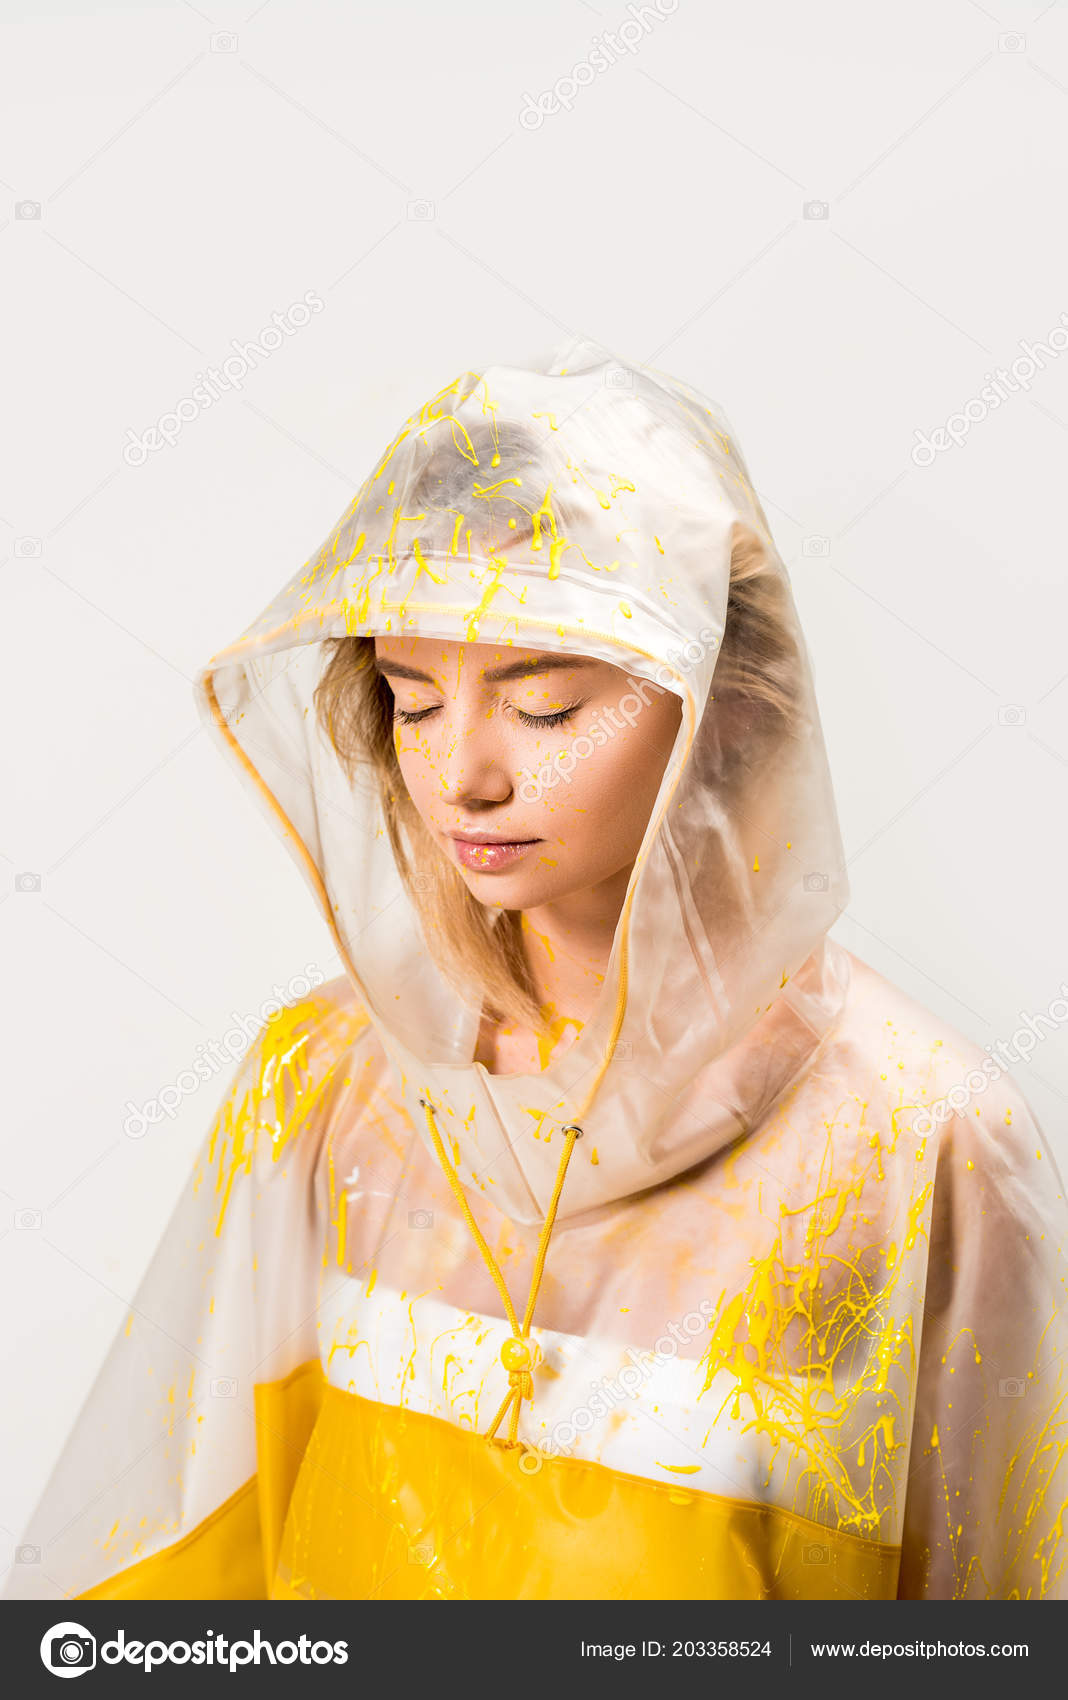 6f250298b Beautiful woman in raincoat and hood painted with yellow paint standing  with closed eyes isolated on white– stock image